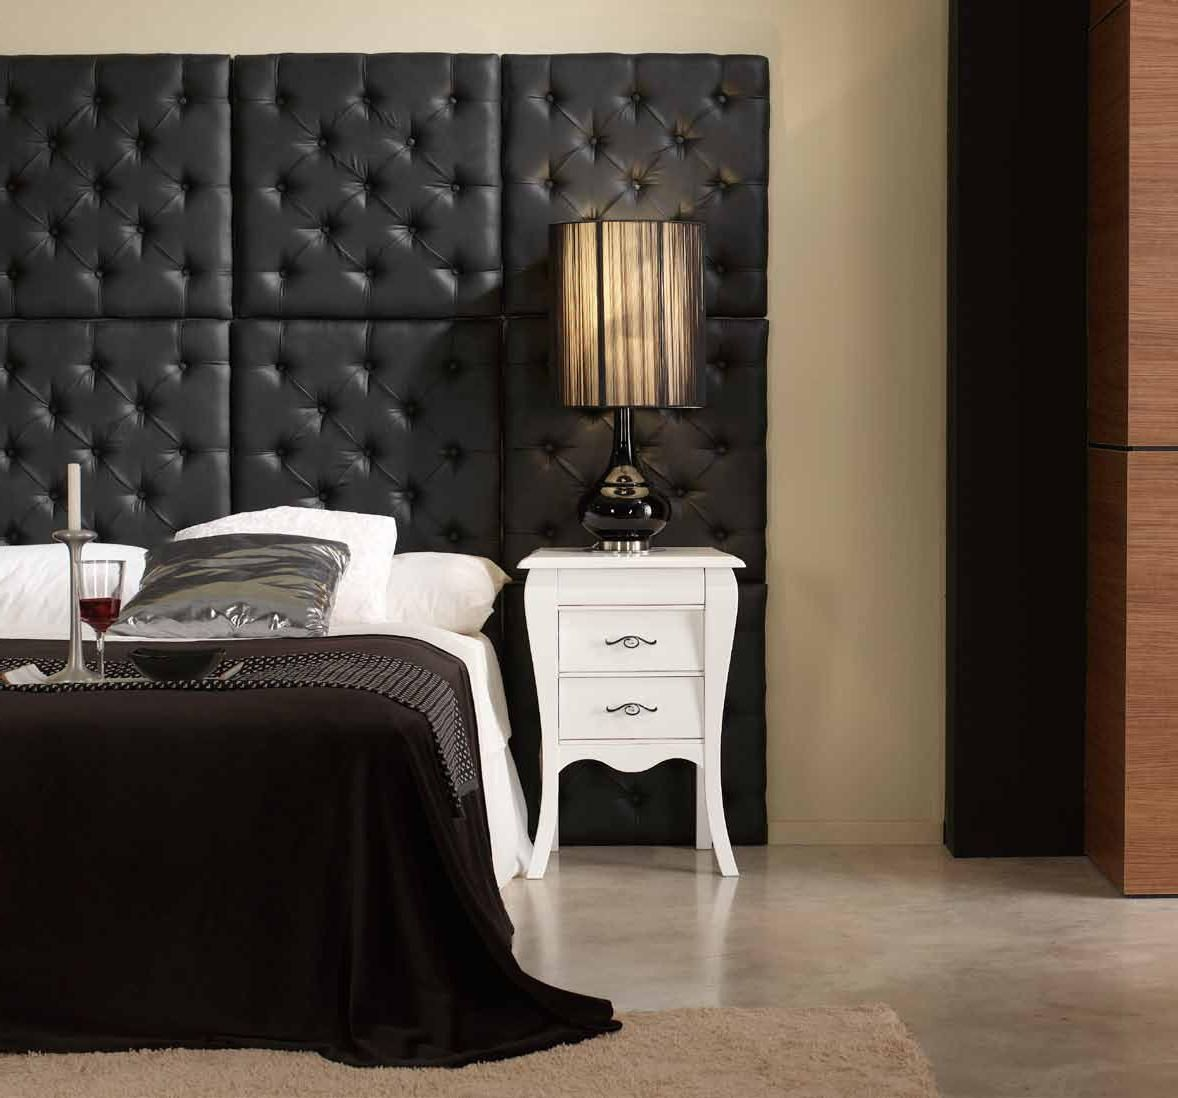 Modern, rich, classy! Padded wall behind the bed and over the